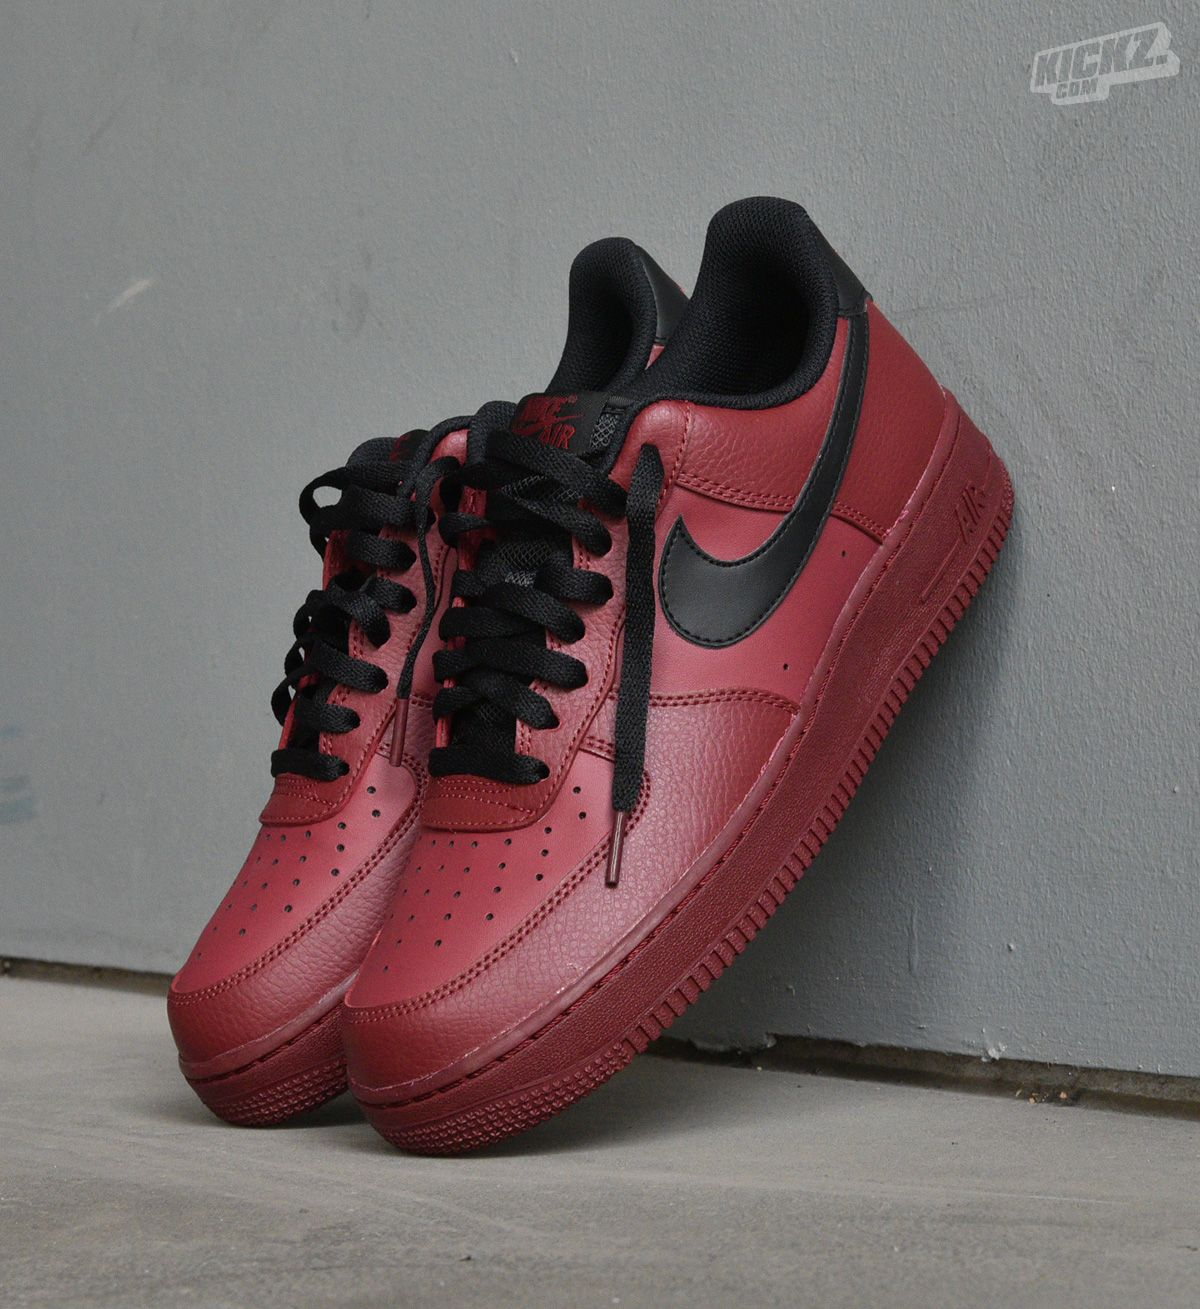 Nike Air Force 1 low (team red). The classic sneaker look of